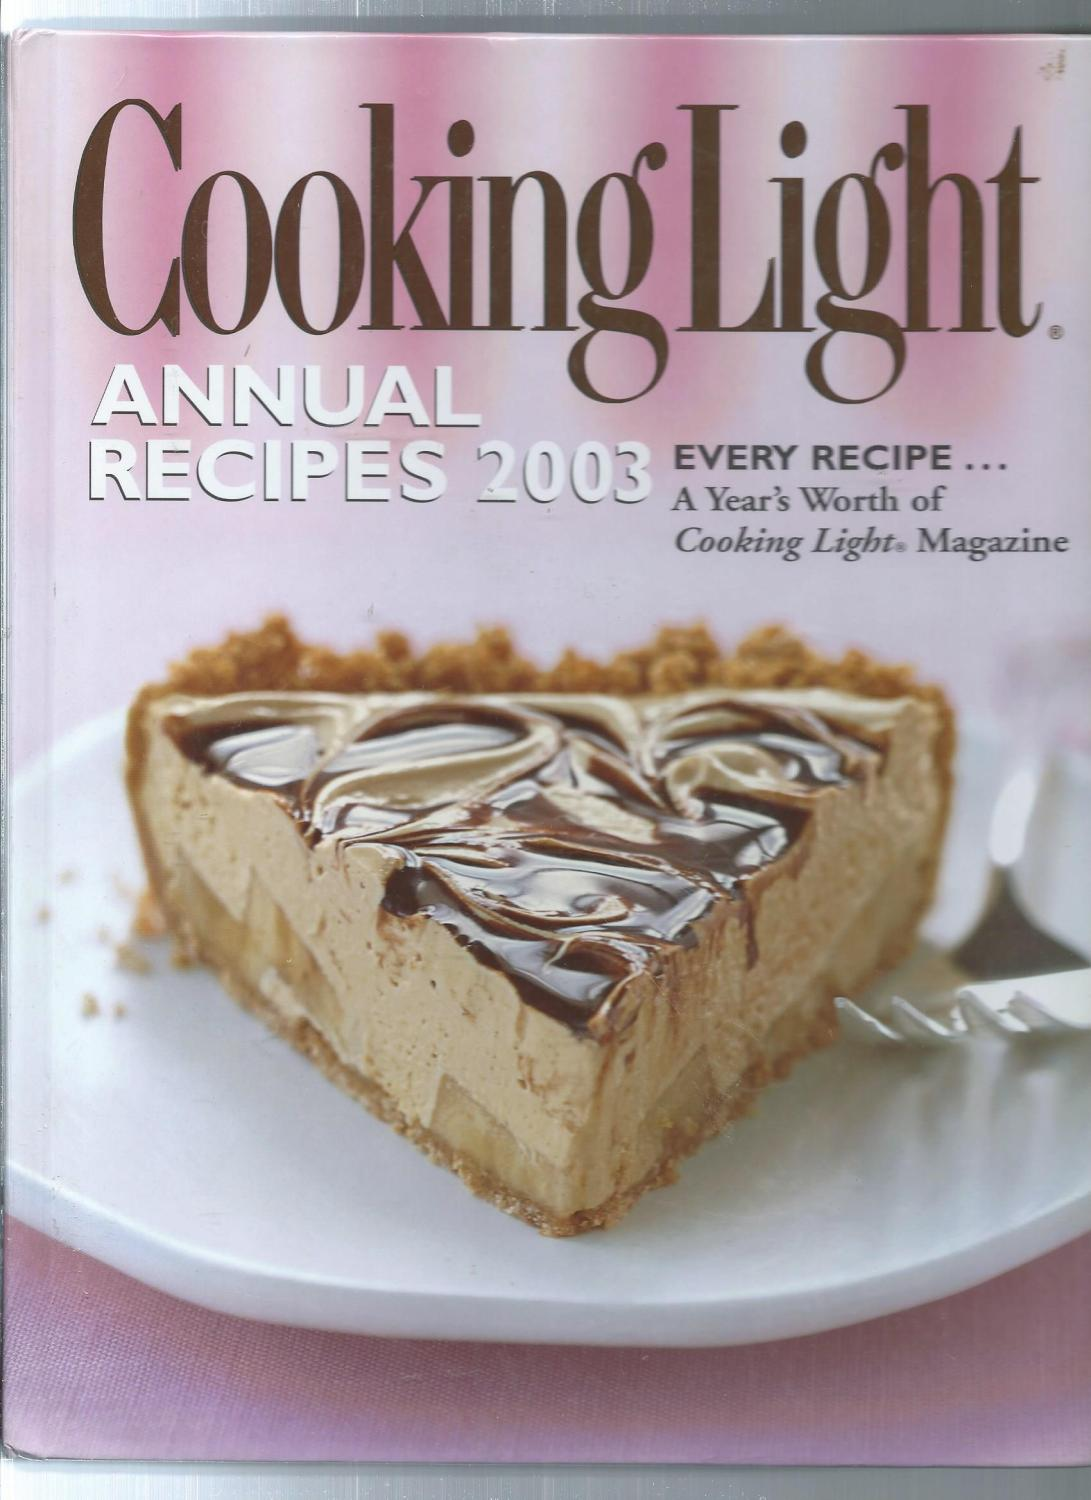 Cooking Light Annual Recipes 2003: Cooking Light Magazine